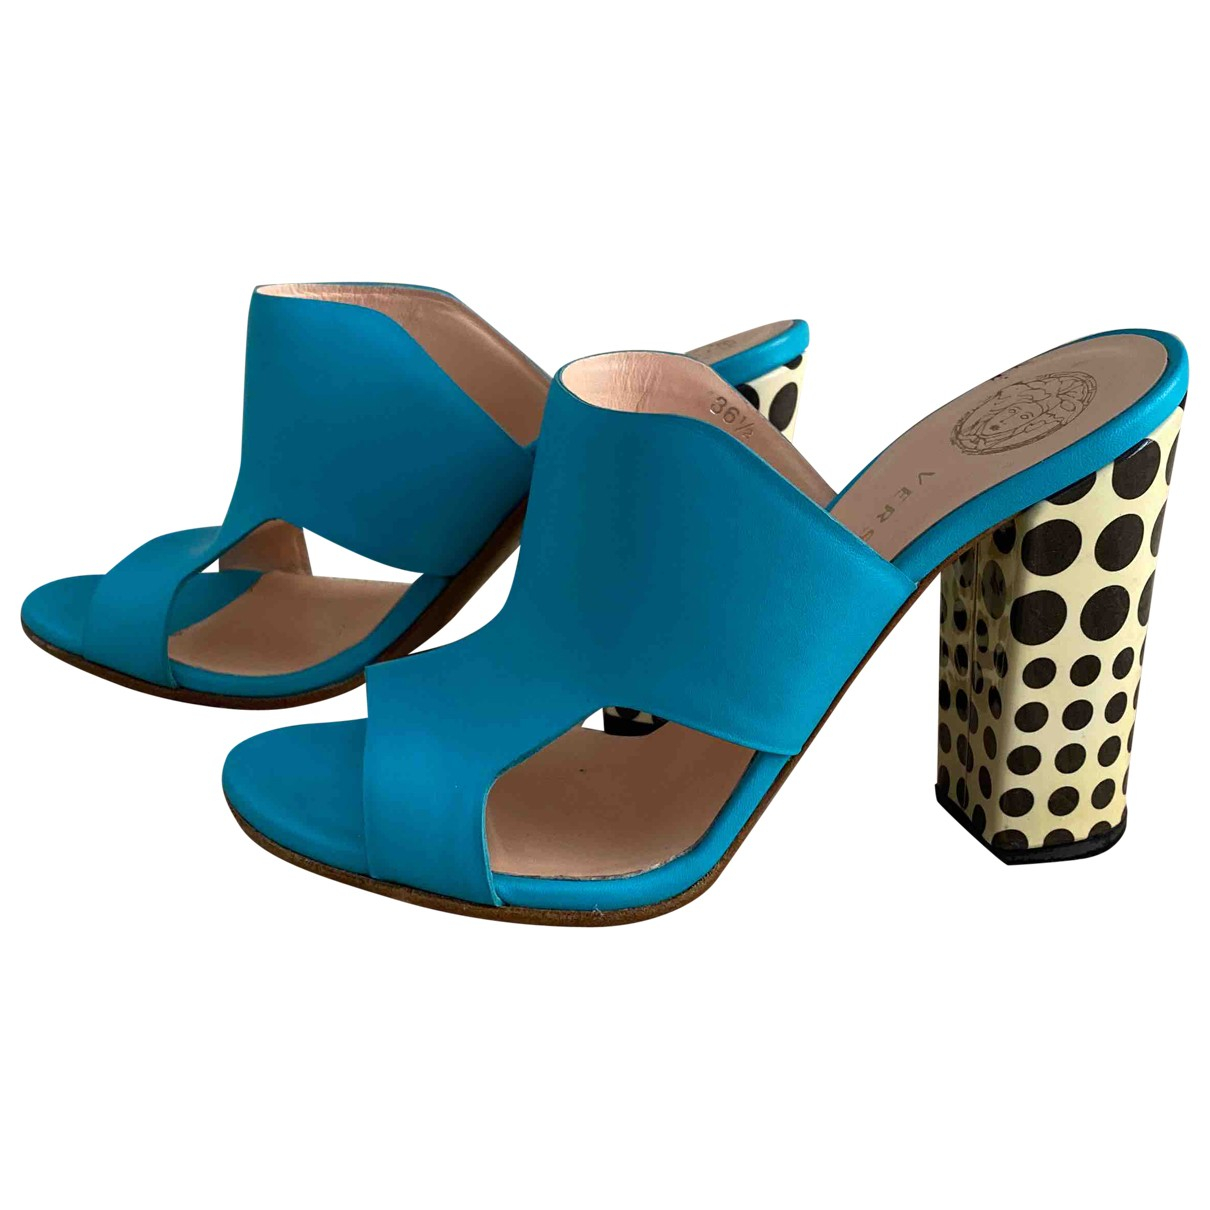 Versace \N Turquoise Leather Sandals for Women 36.5 IT